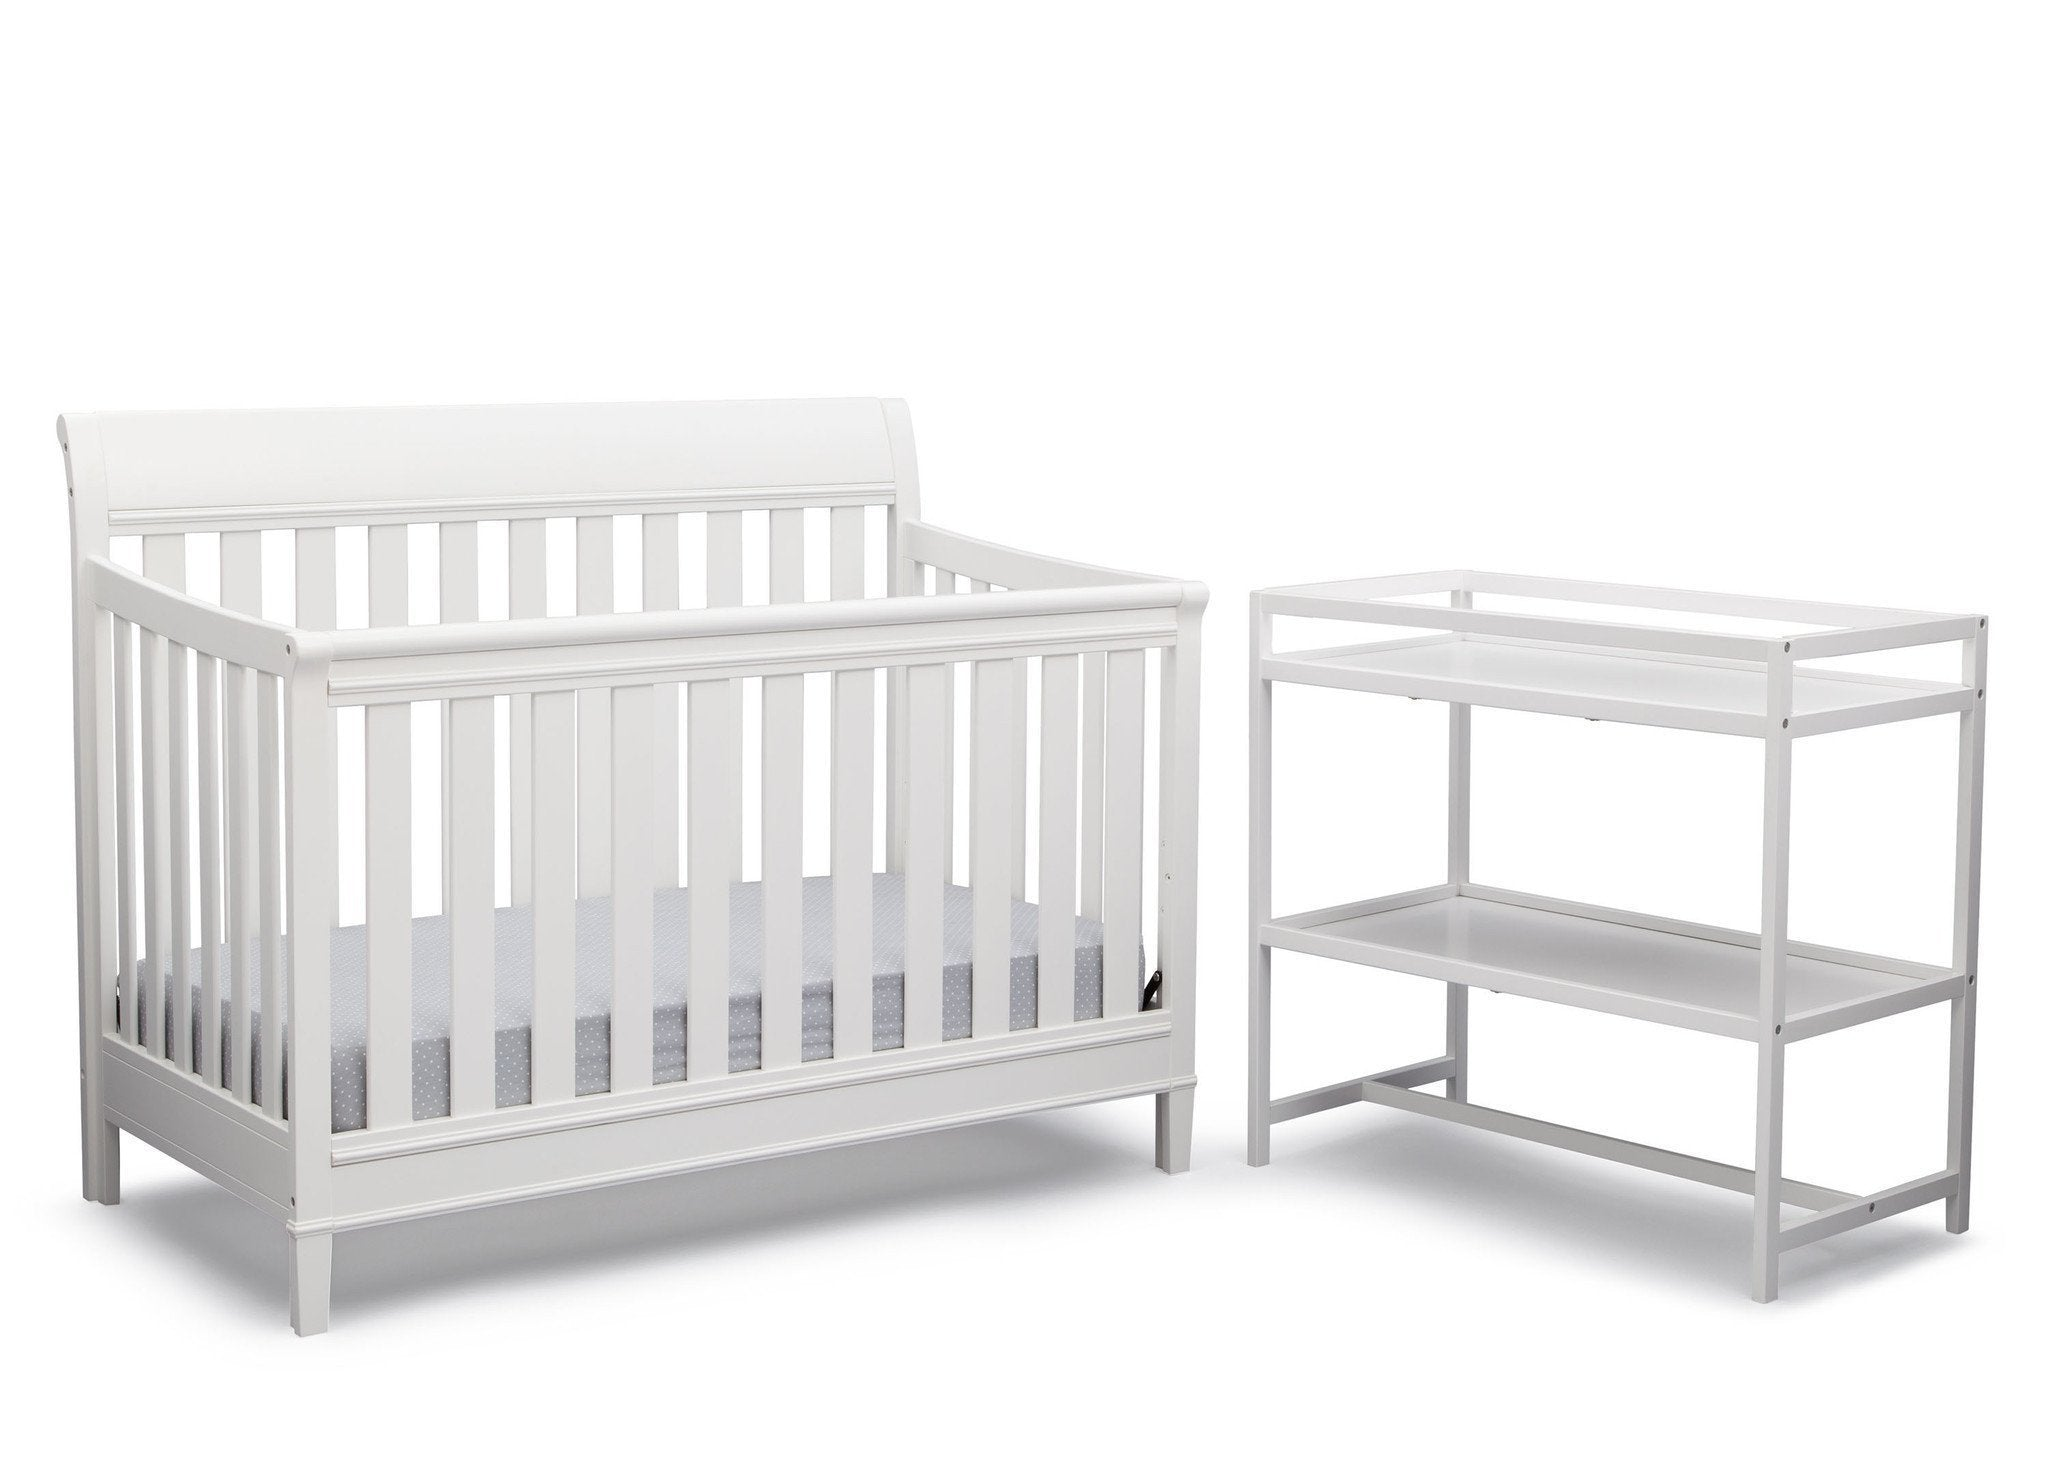 Delta Children White (100) Harbor 2 Piece Room-in-a-Box b2b